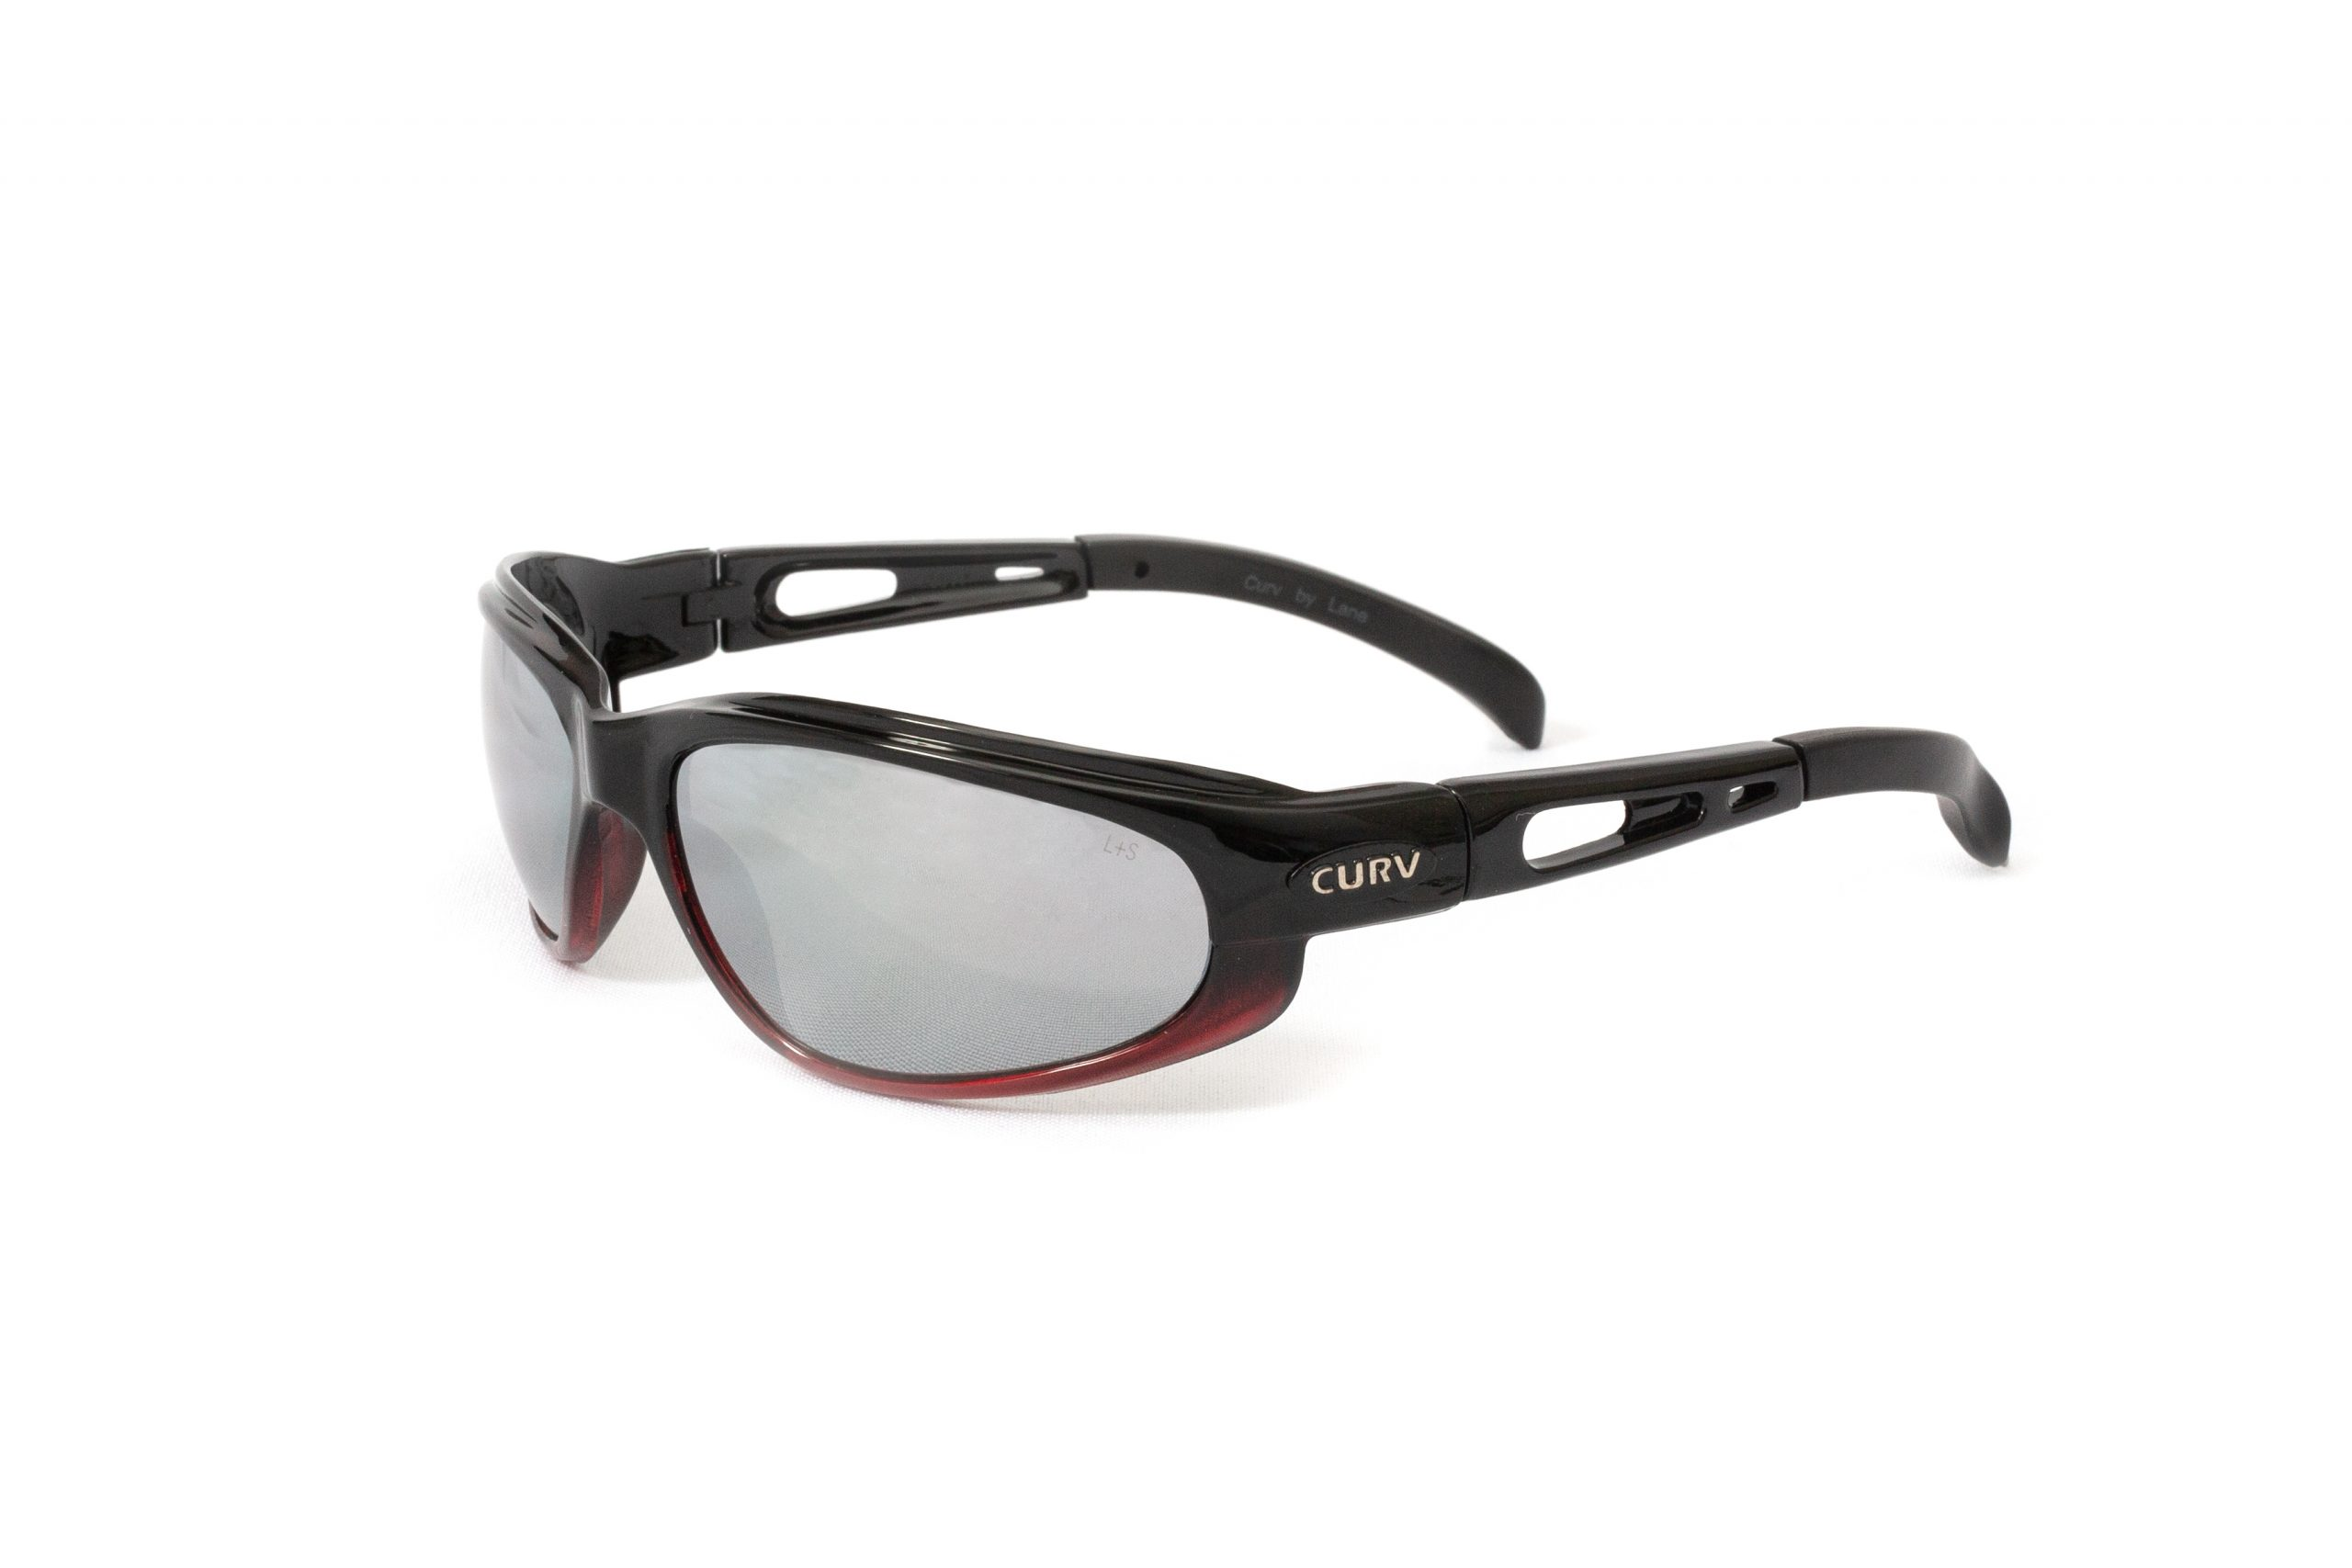 01-79 - Curv Red Accent Sunglasses in Matte Black Frames with Red Accent Fade and Smoke Lenses